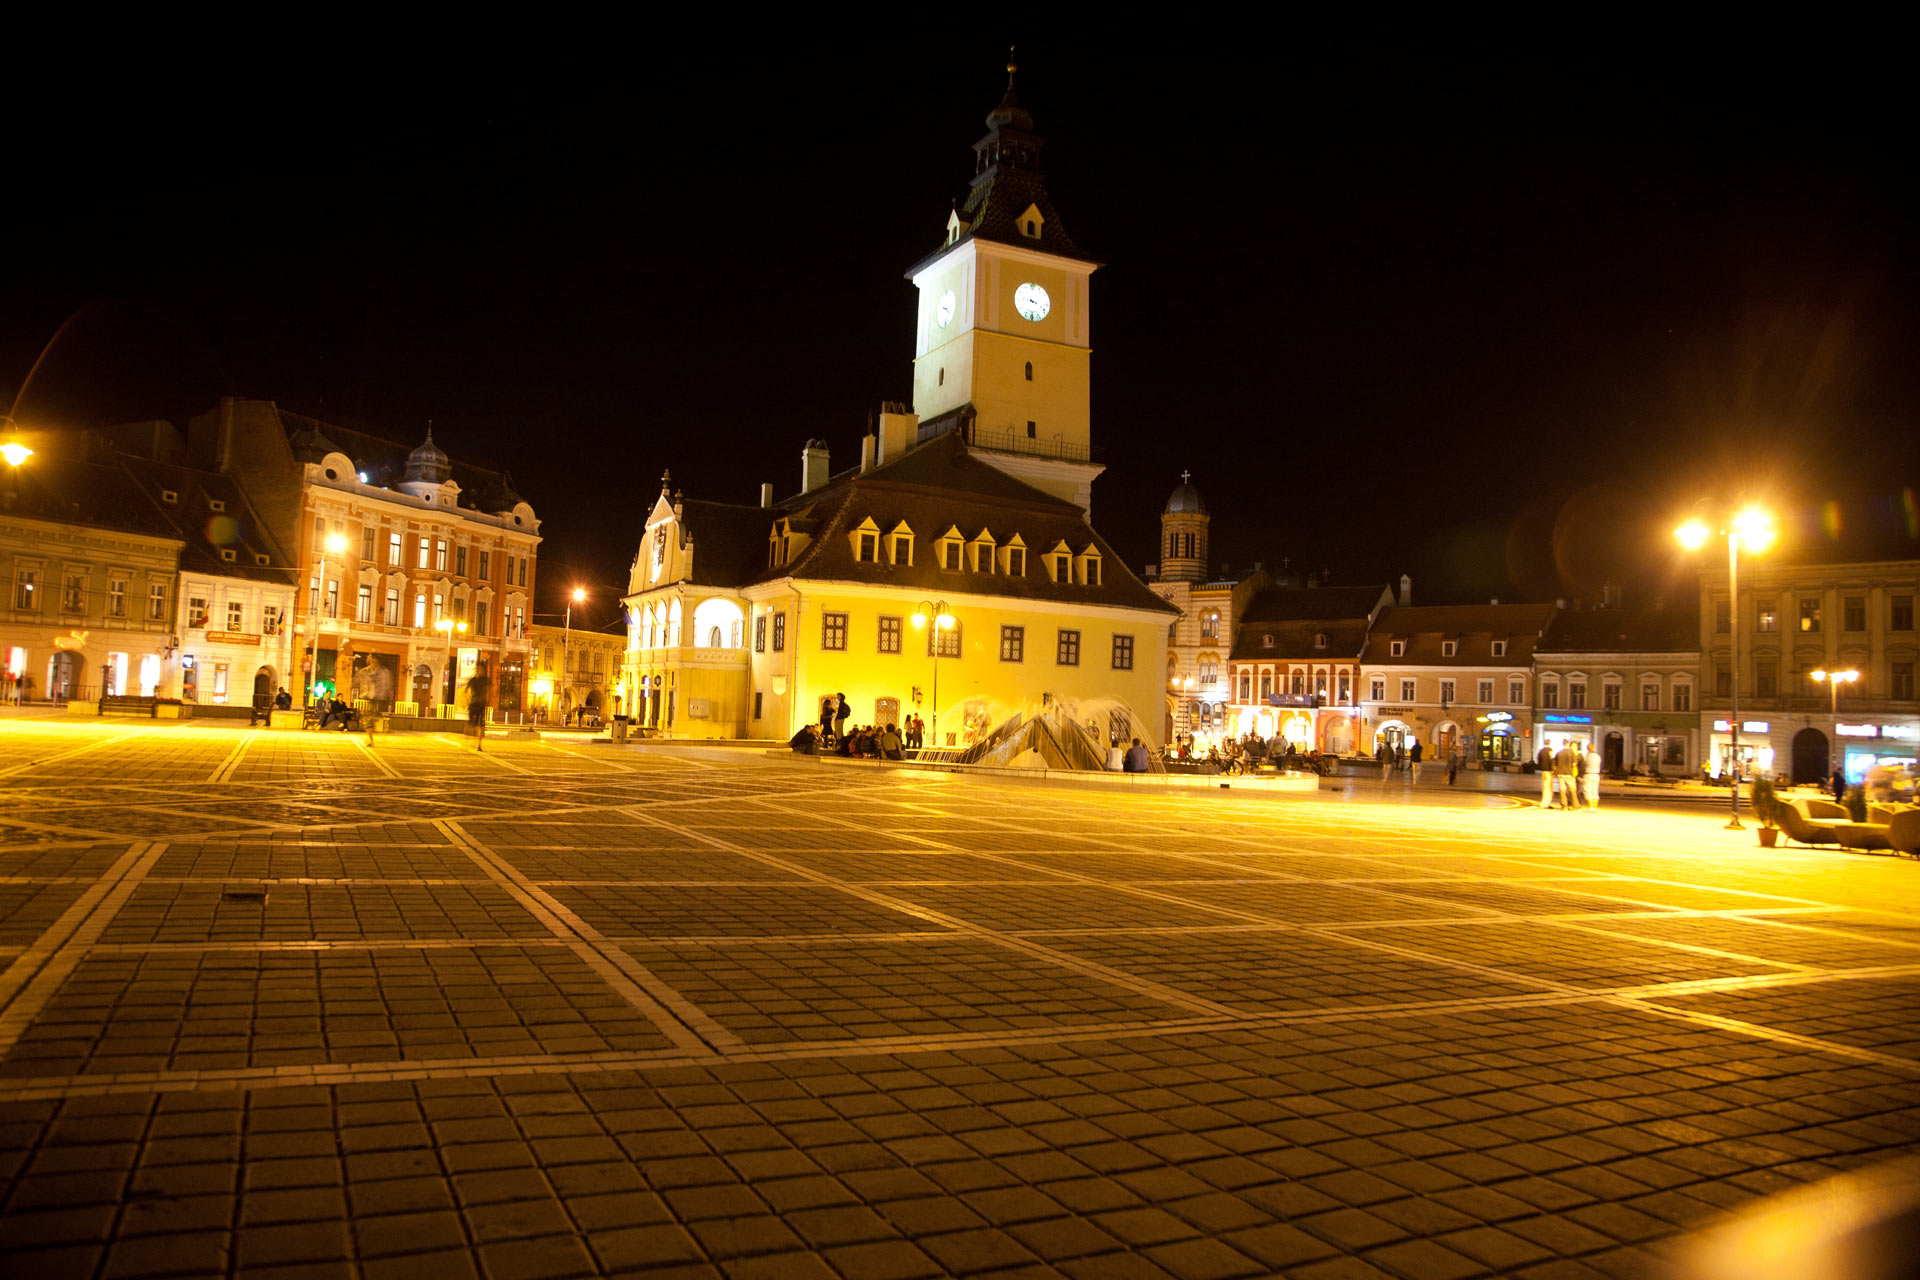 City Hall Square at night, Brasov, Romania